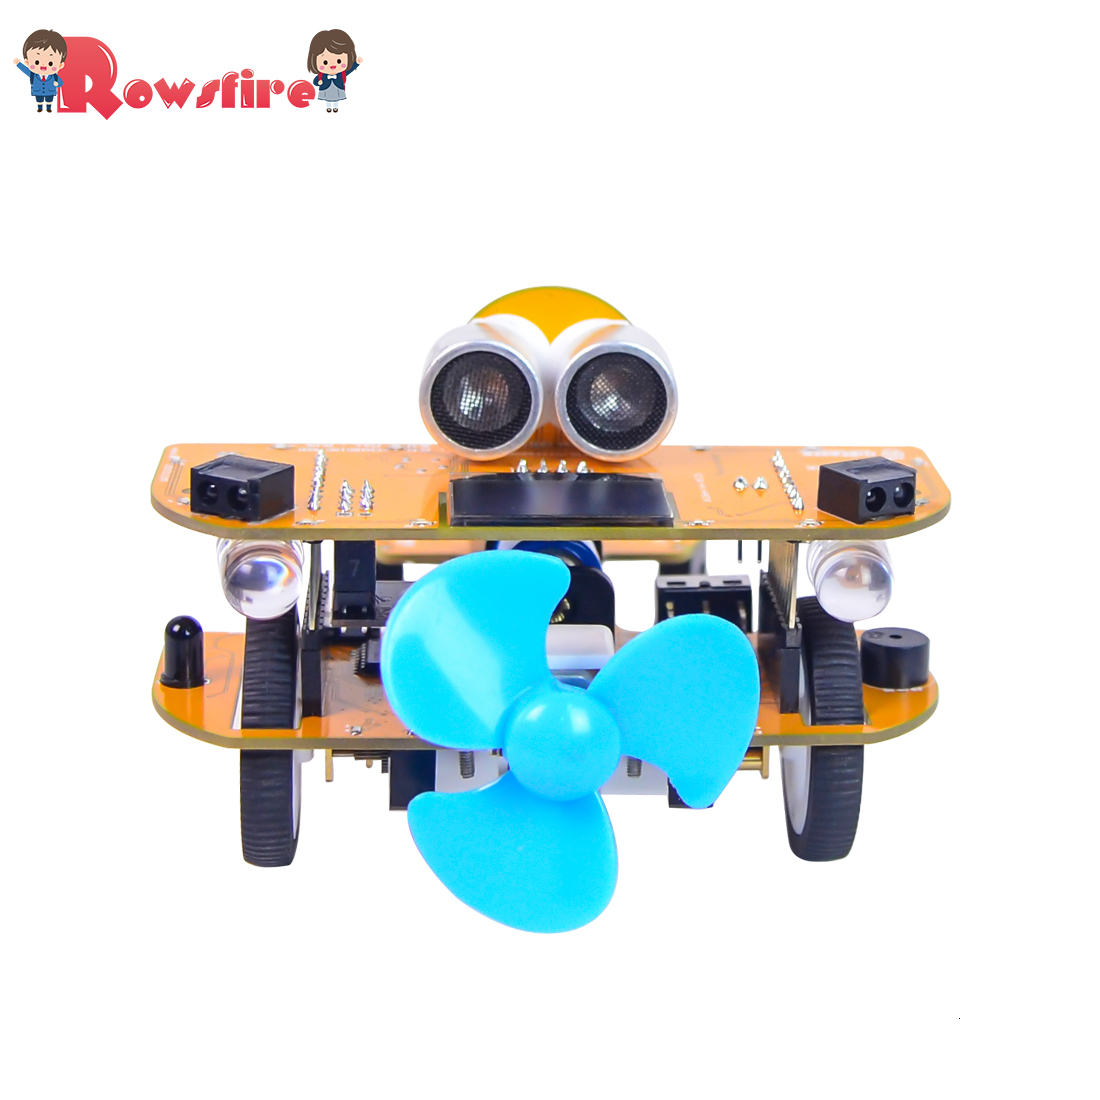 Programmable Intelligent Car Steam Educational DIY Plane With Graphical Processing Scratch Mixly 2 Type Toy Games